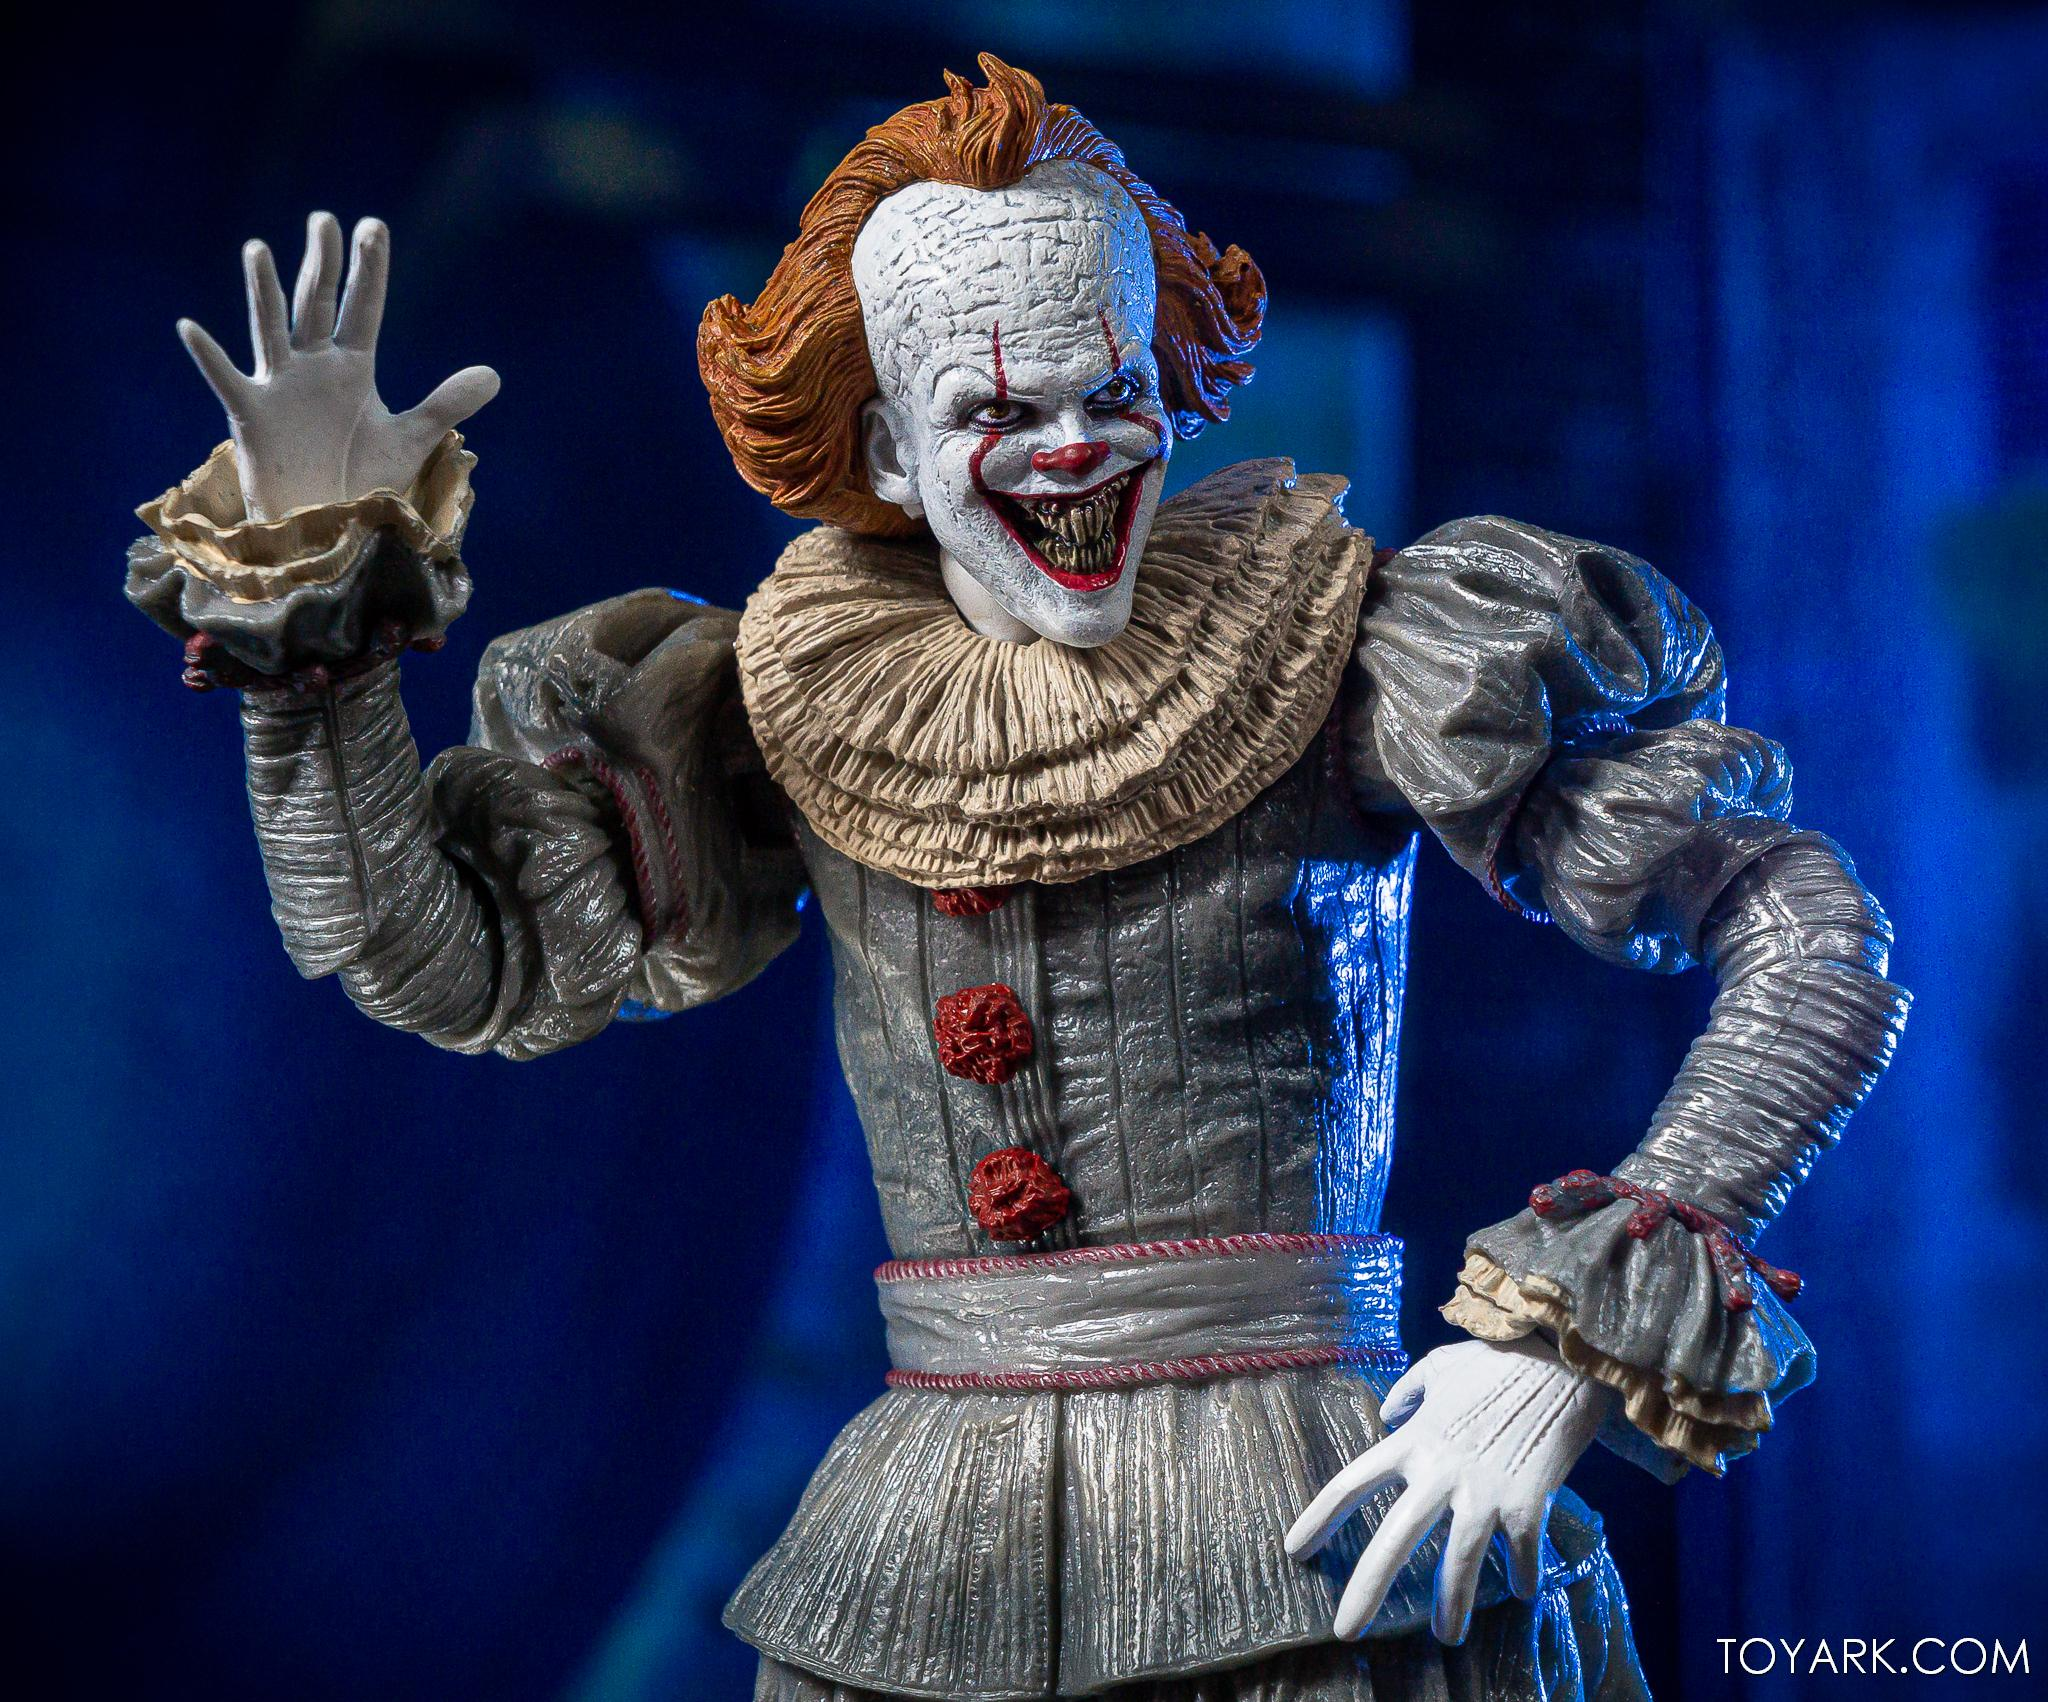 https://news.toyark.com/wp-content/uploads/sites/4/2020/06/NECA-IT-2-Ultimate-Pennywise-025.jpg